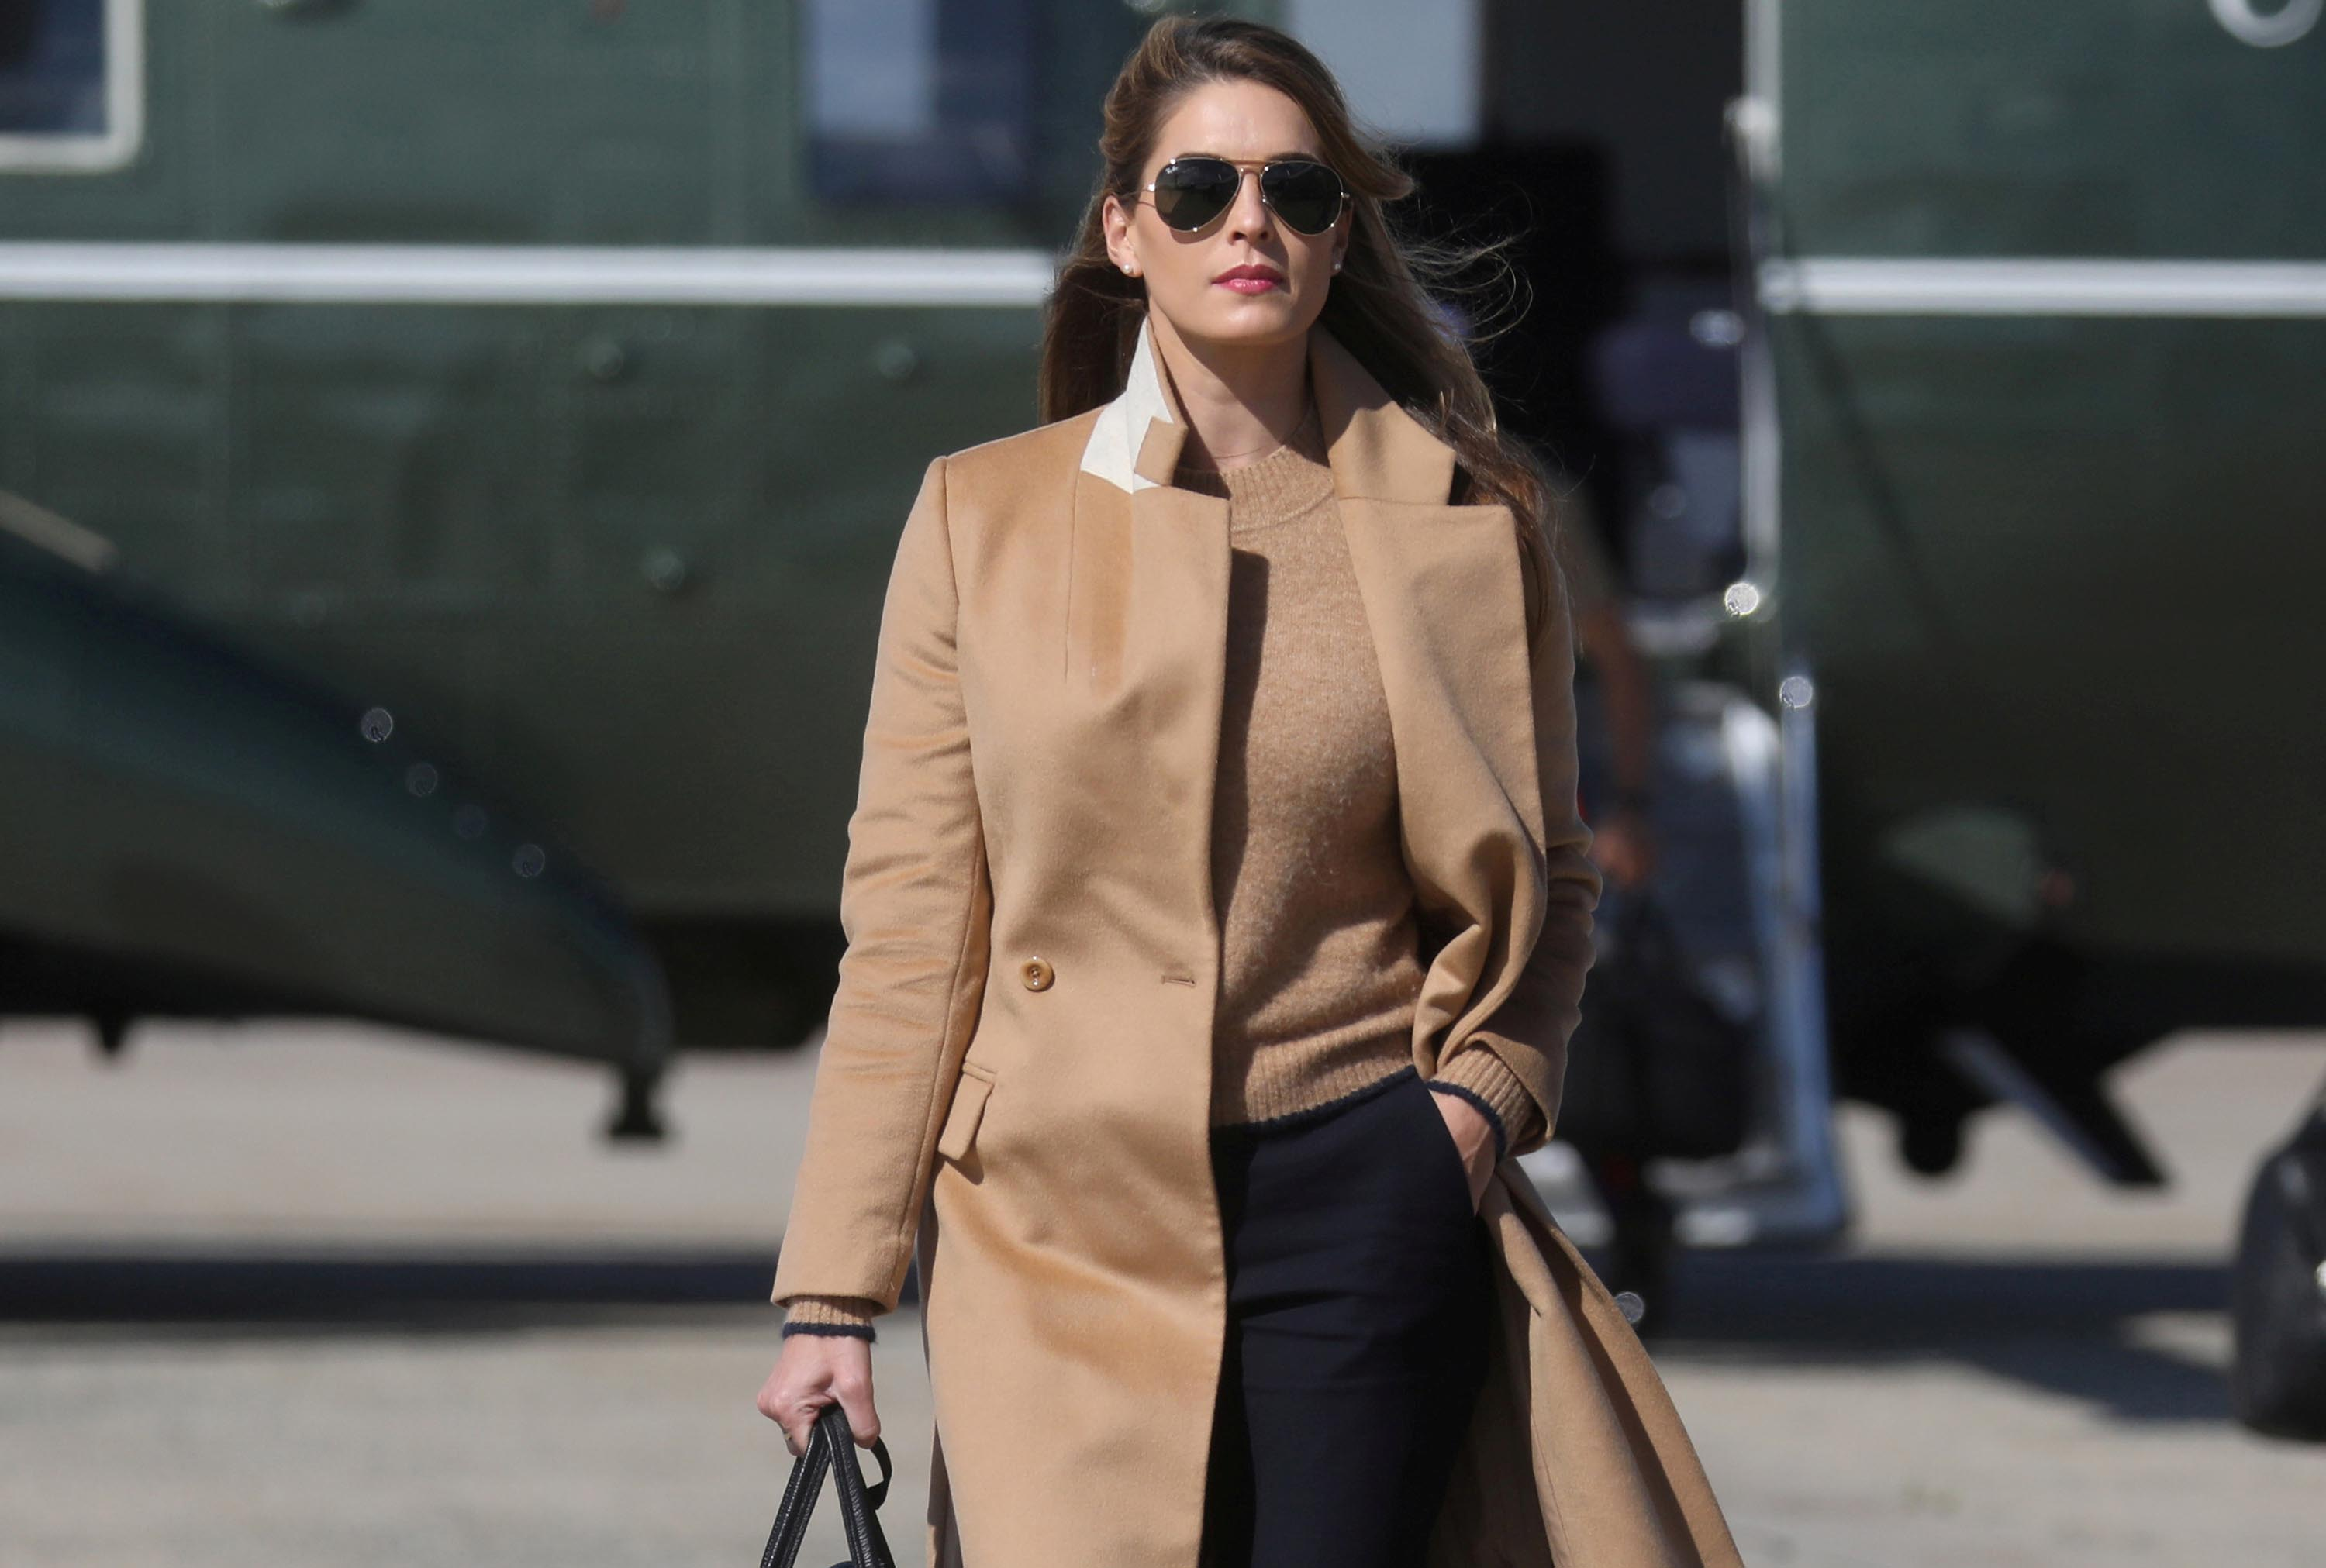 Hope Hicks, an adviser to US President Donald Trump, walks to Air Force One to depart with the President and other staff on campaign travel to Minnesota from Joint Base Andrews, Maryland, on Wednesday, September 30.